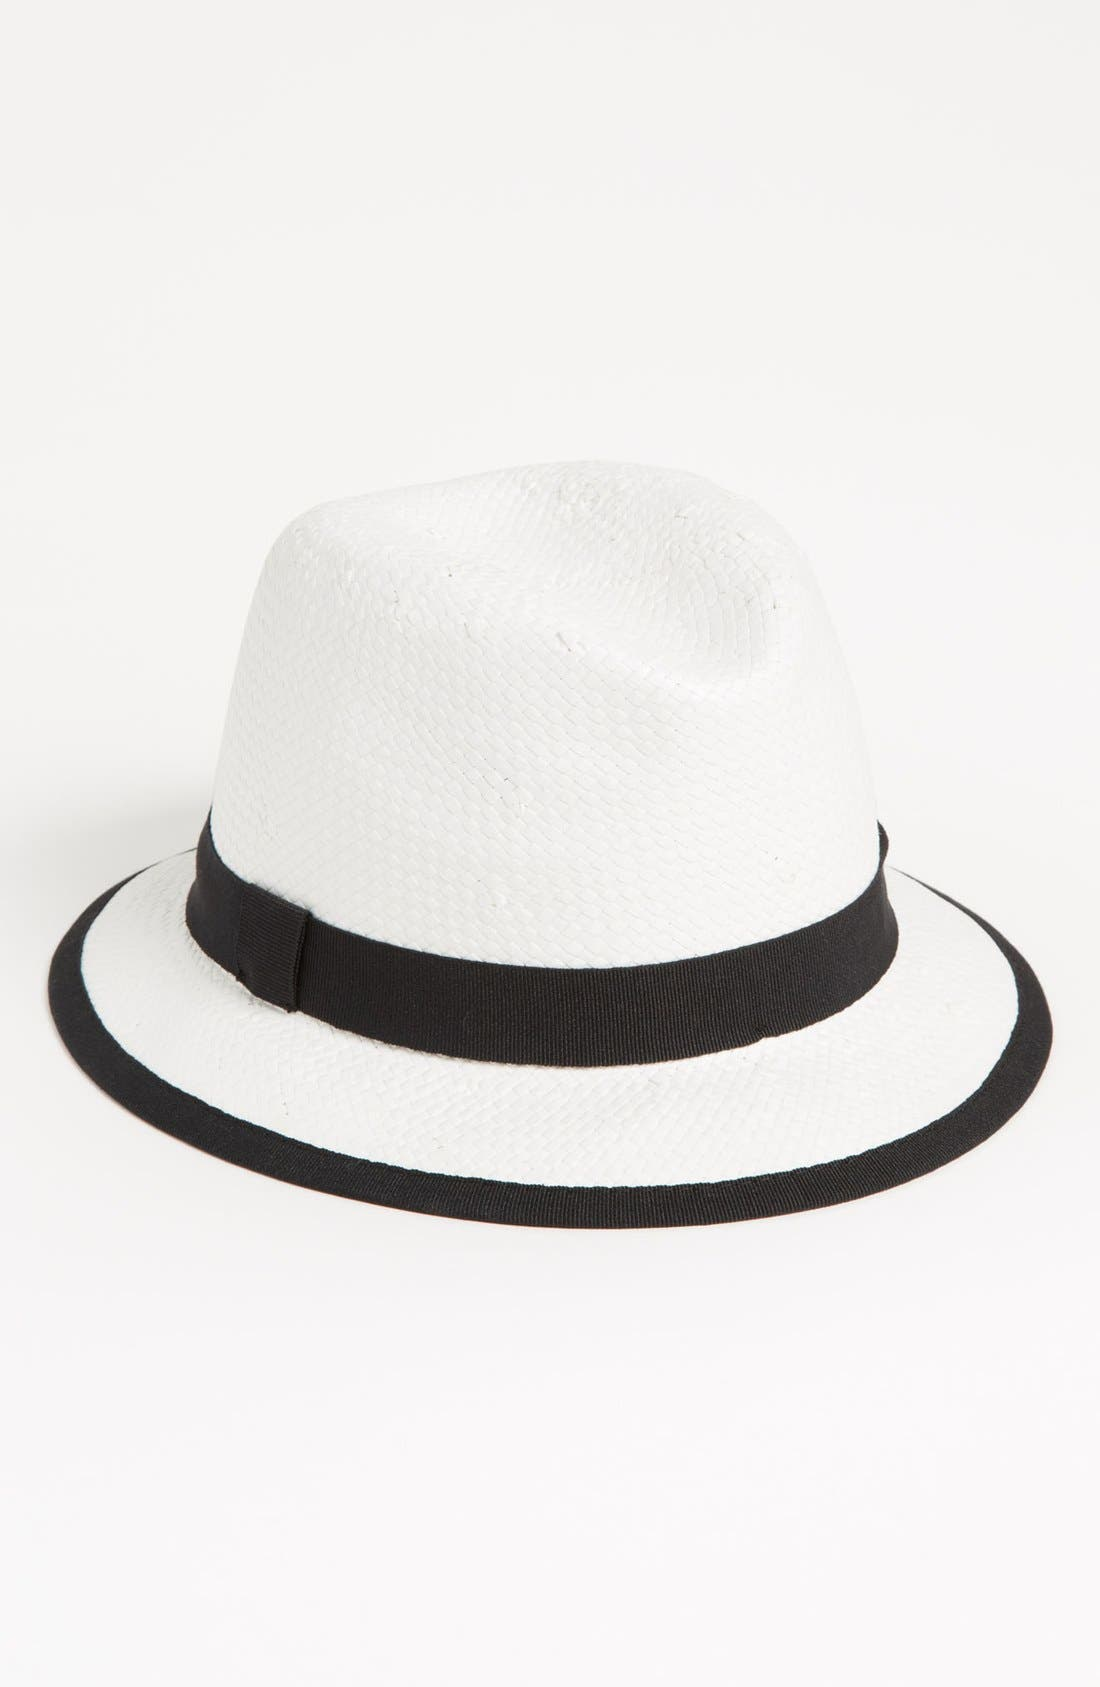 TARNISH 'Fluorescent' Fedora, Main, color, 100